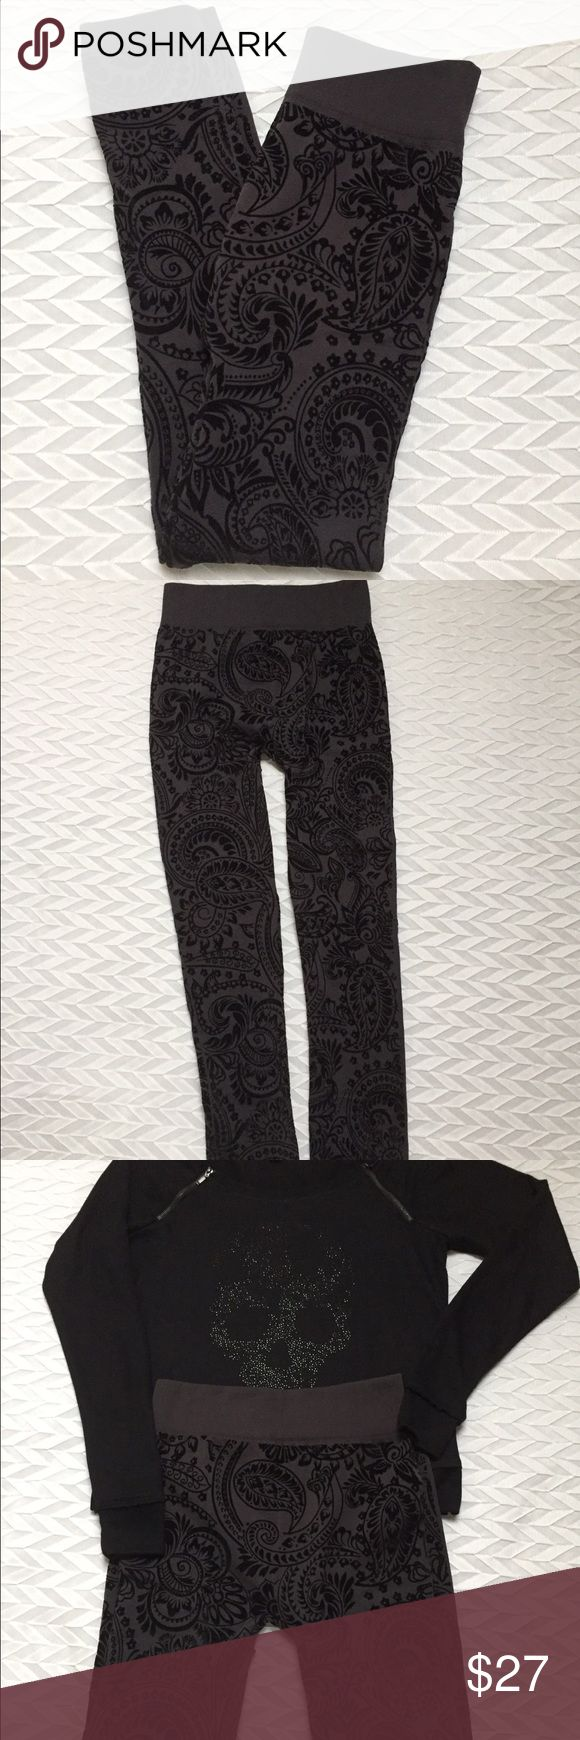 Damask black & charcoal leggings Gorgeous pair of leggings, re-posh, NWOT.  The main color is grey with the design being in black velvet, nice waistband & fitted bottoms. The size states M/L. 92% polyester, 8% spandex.  I'm selling them for the price I purchased them for, so the price is Firm QREE Pants Leggings